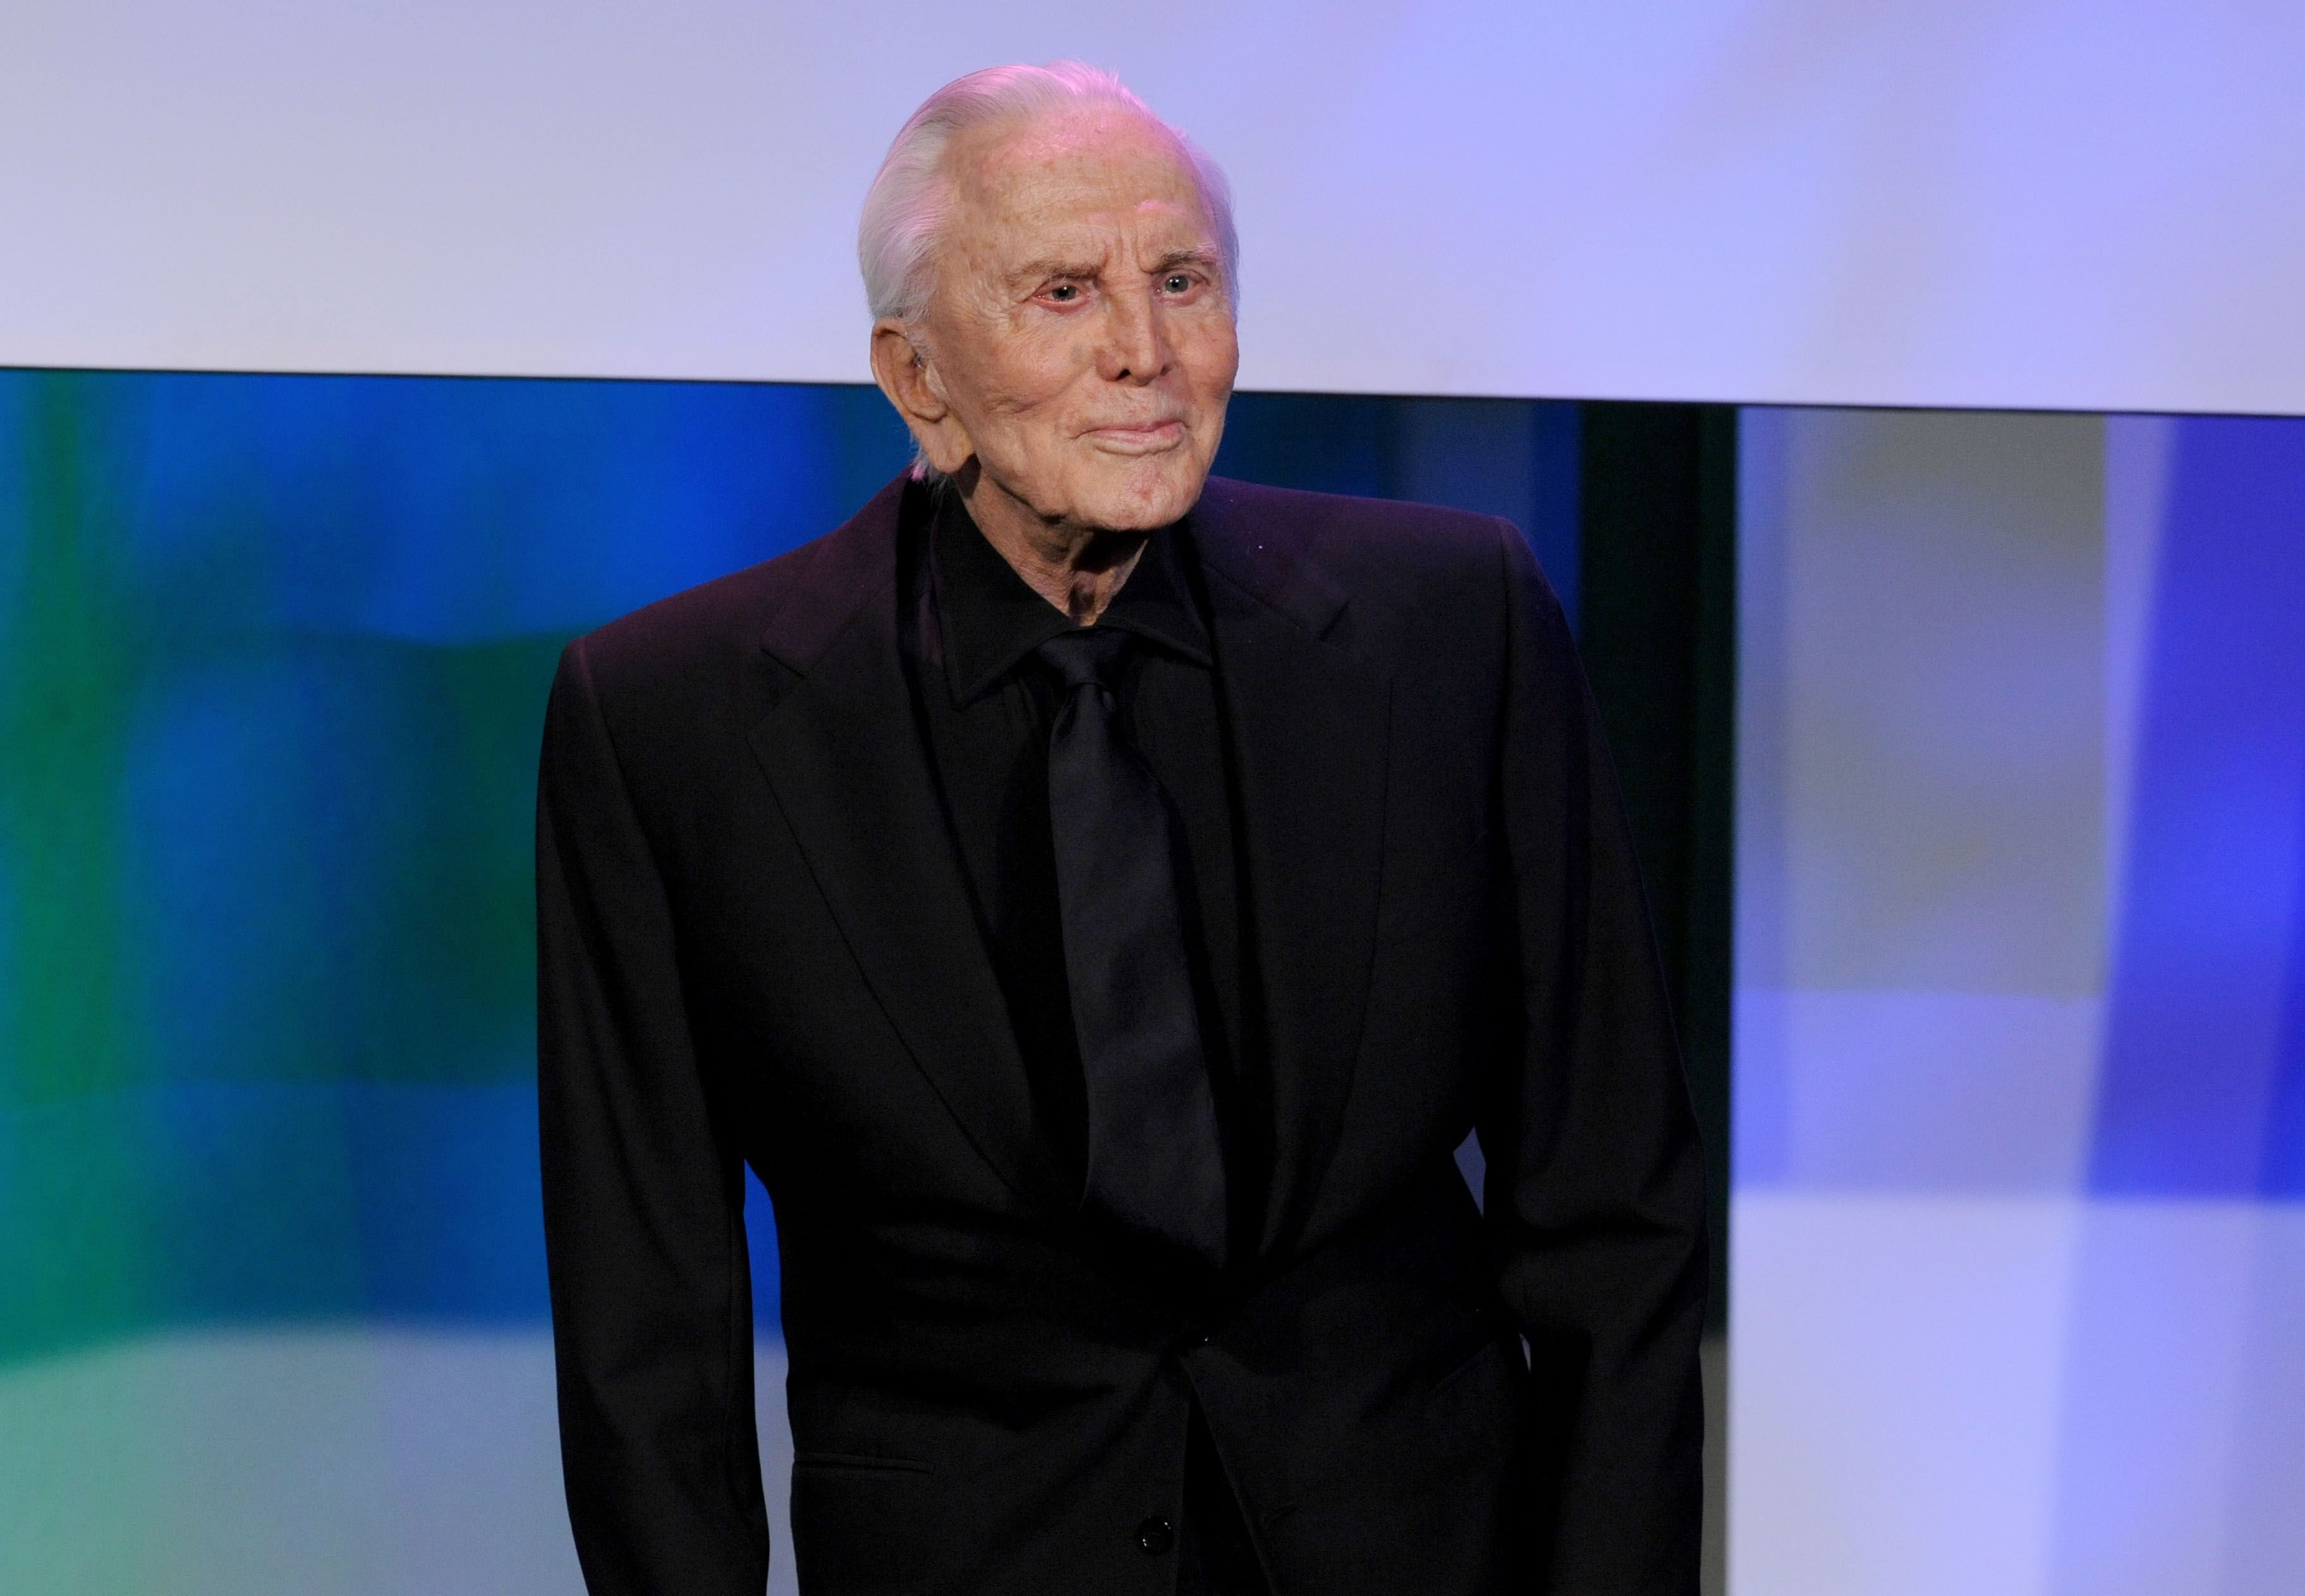 The late Kirk Douglas at the ADL Los Angeles Dinner Honoring Steven Spielberg at The Beverly Hilton Hotel on December 9, 2009 | Photo: Getty Images